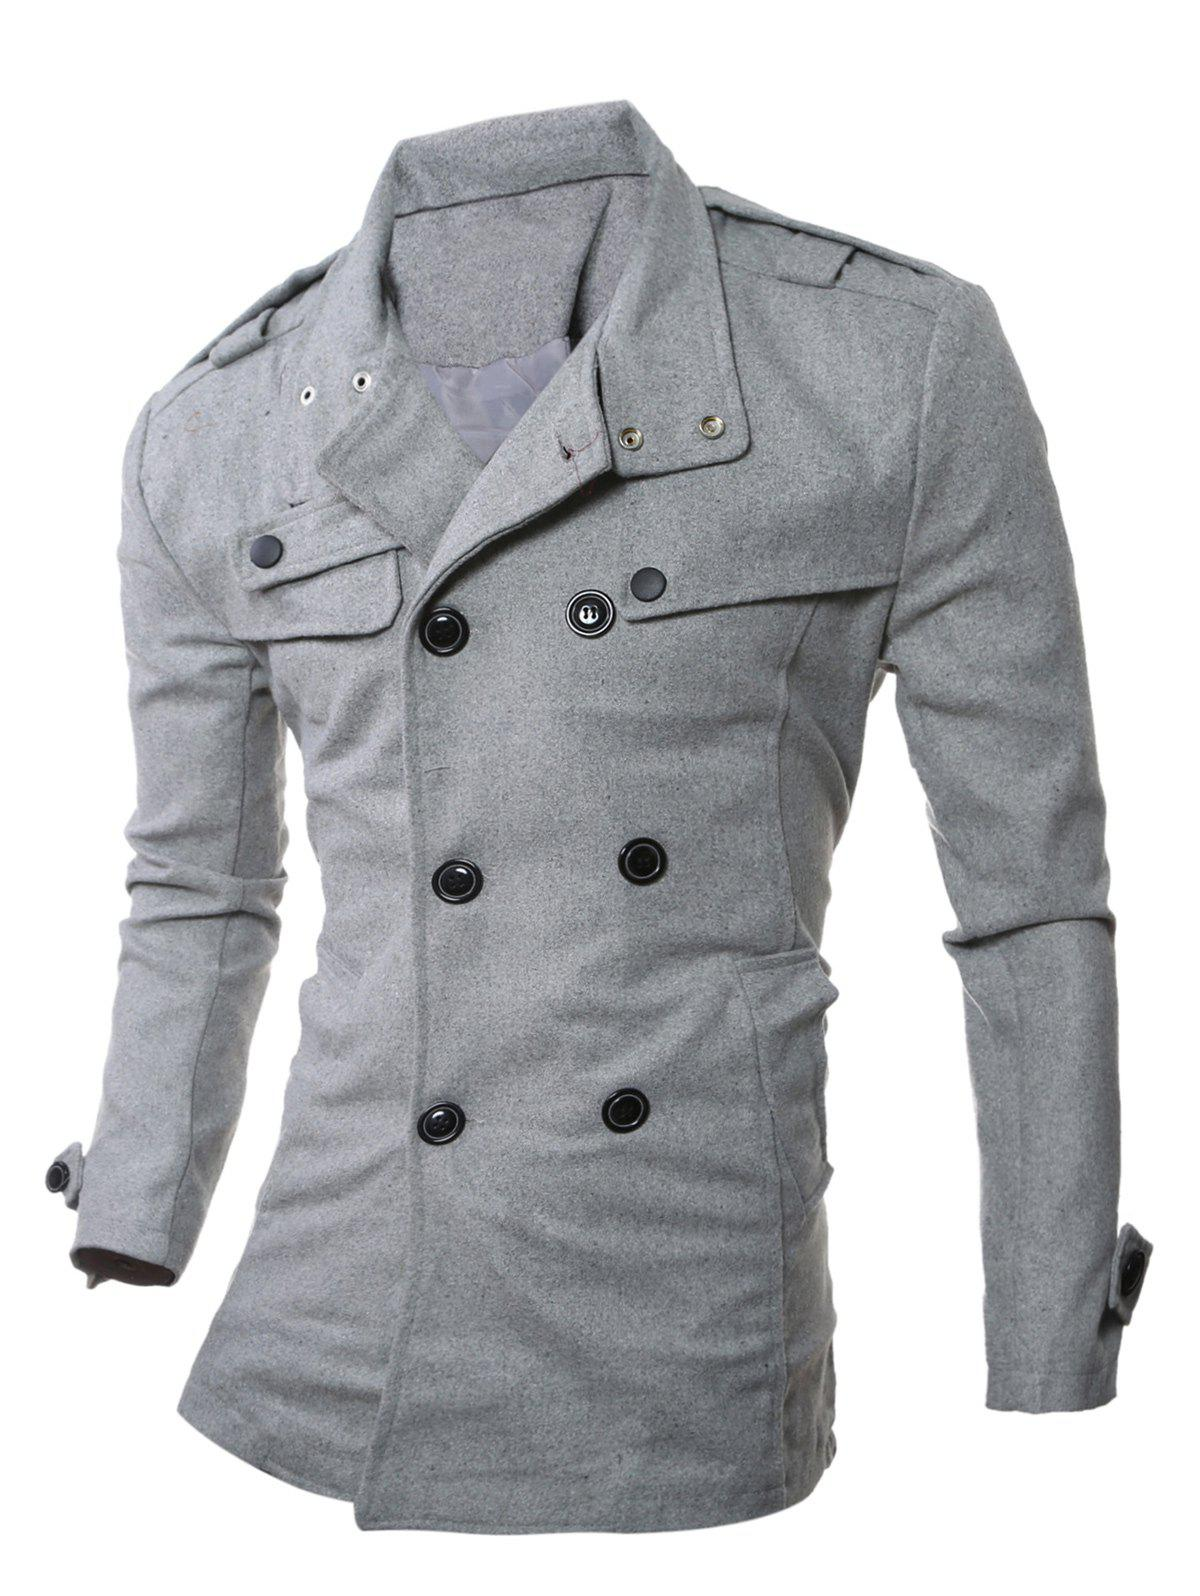 Double Breasted Epaulet Embellished Woolen Coat - GRAY M